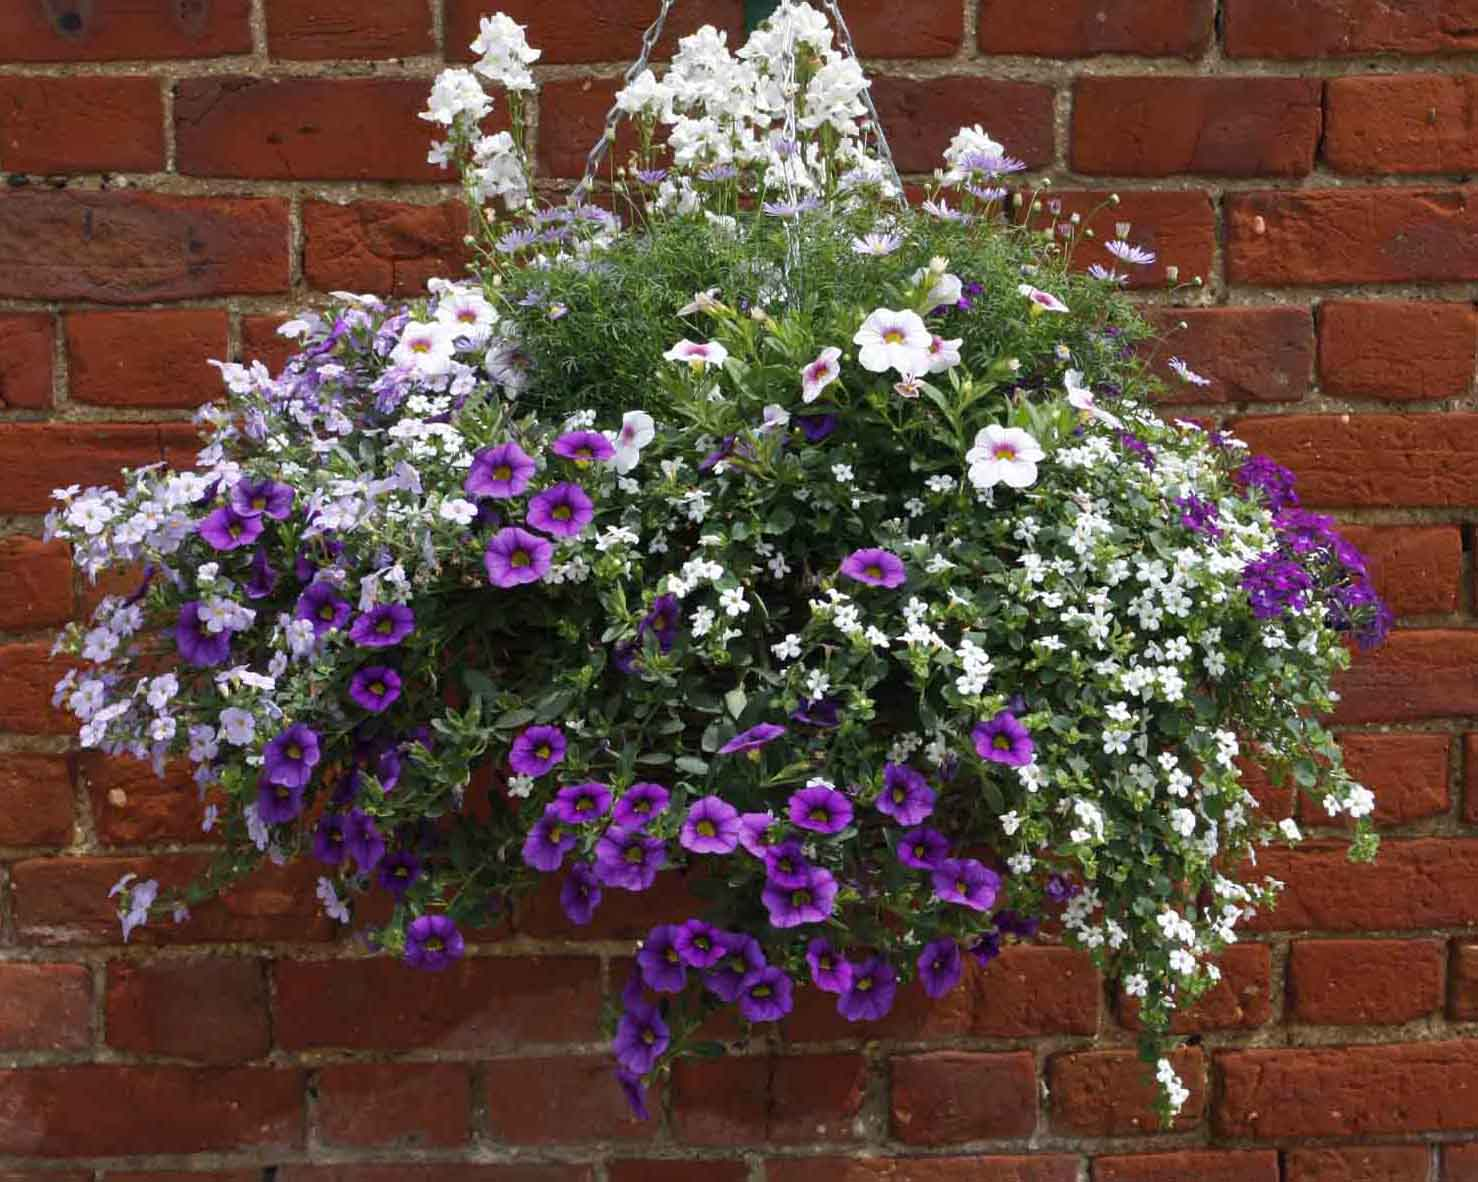 Blueberry-Hanging-Basket-Grown-by-Green-Pastures.jpg